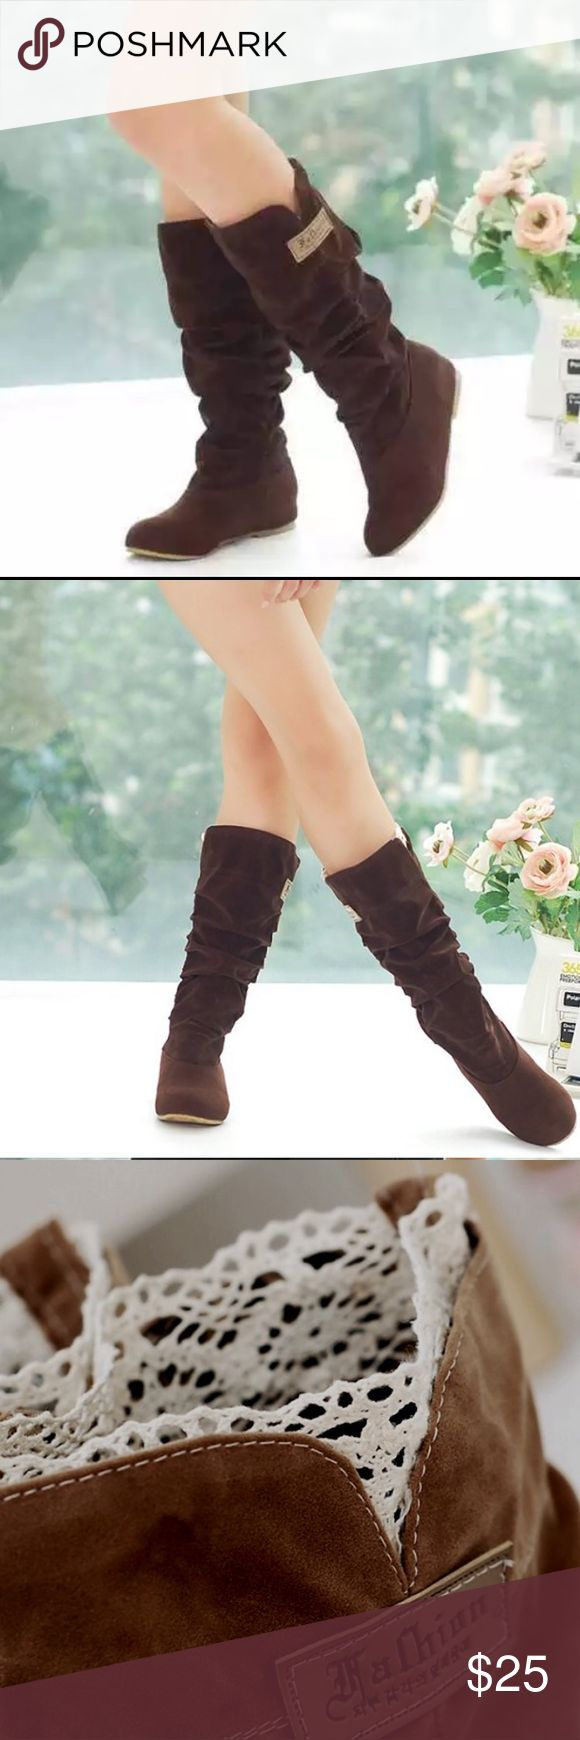 Dark Brown Faux Suede Boots Size 6 Brand new boots calf high slouch boots size 6 womens Shoes